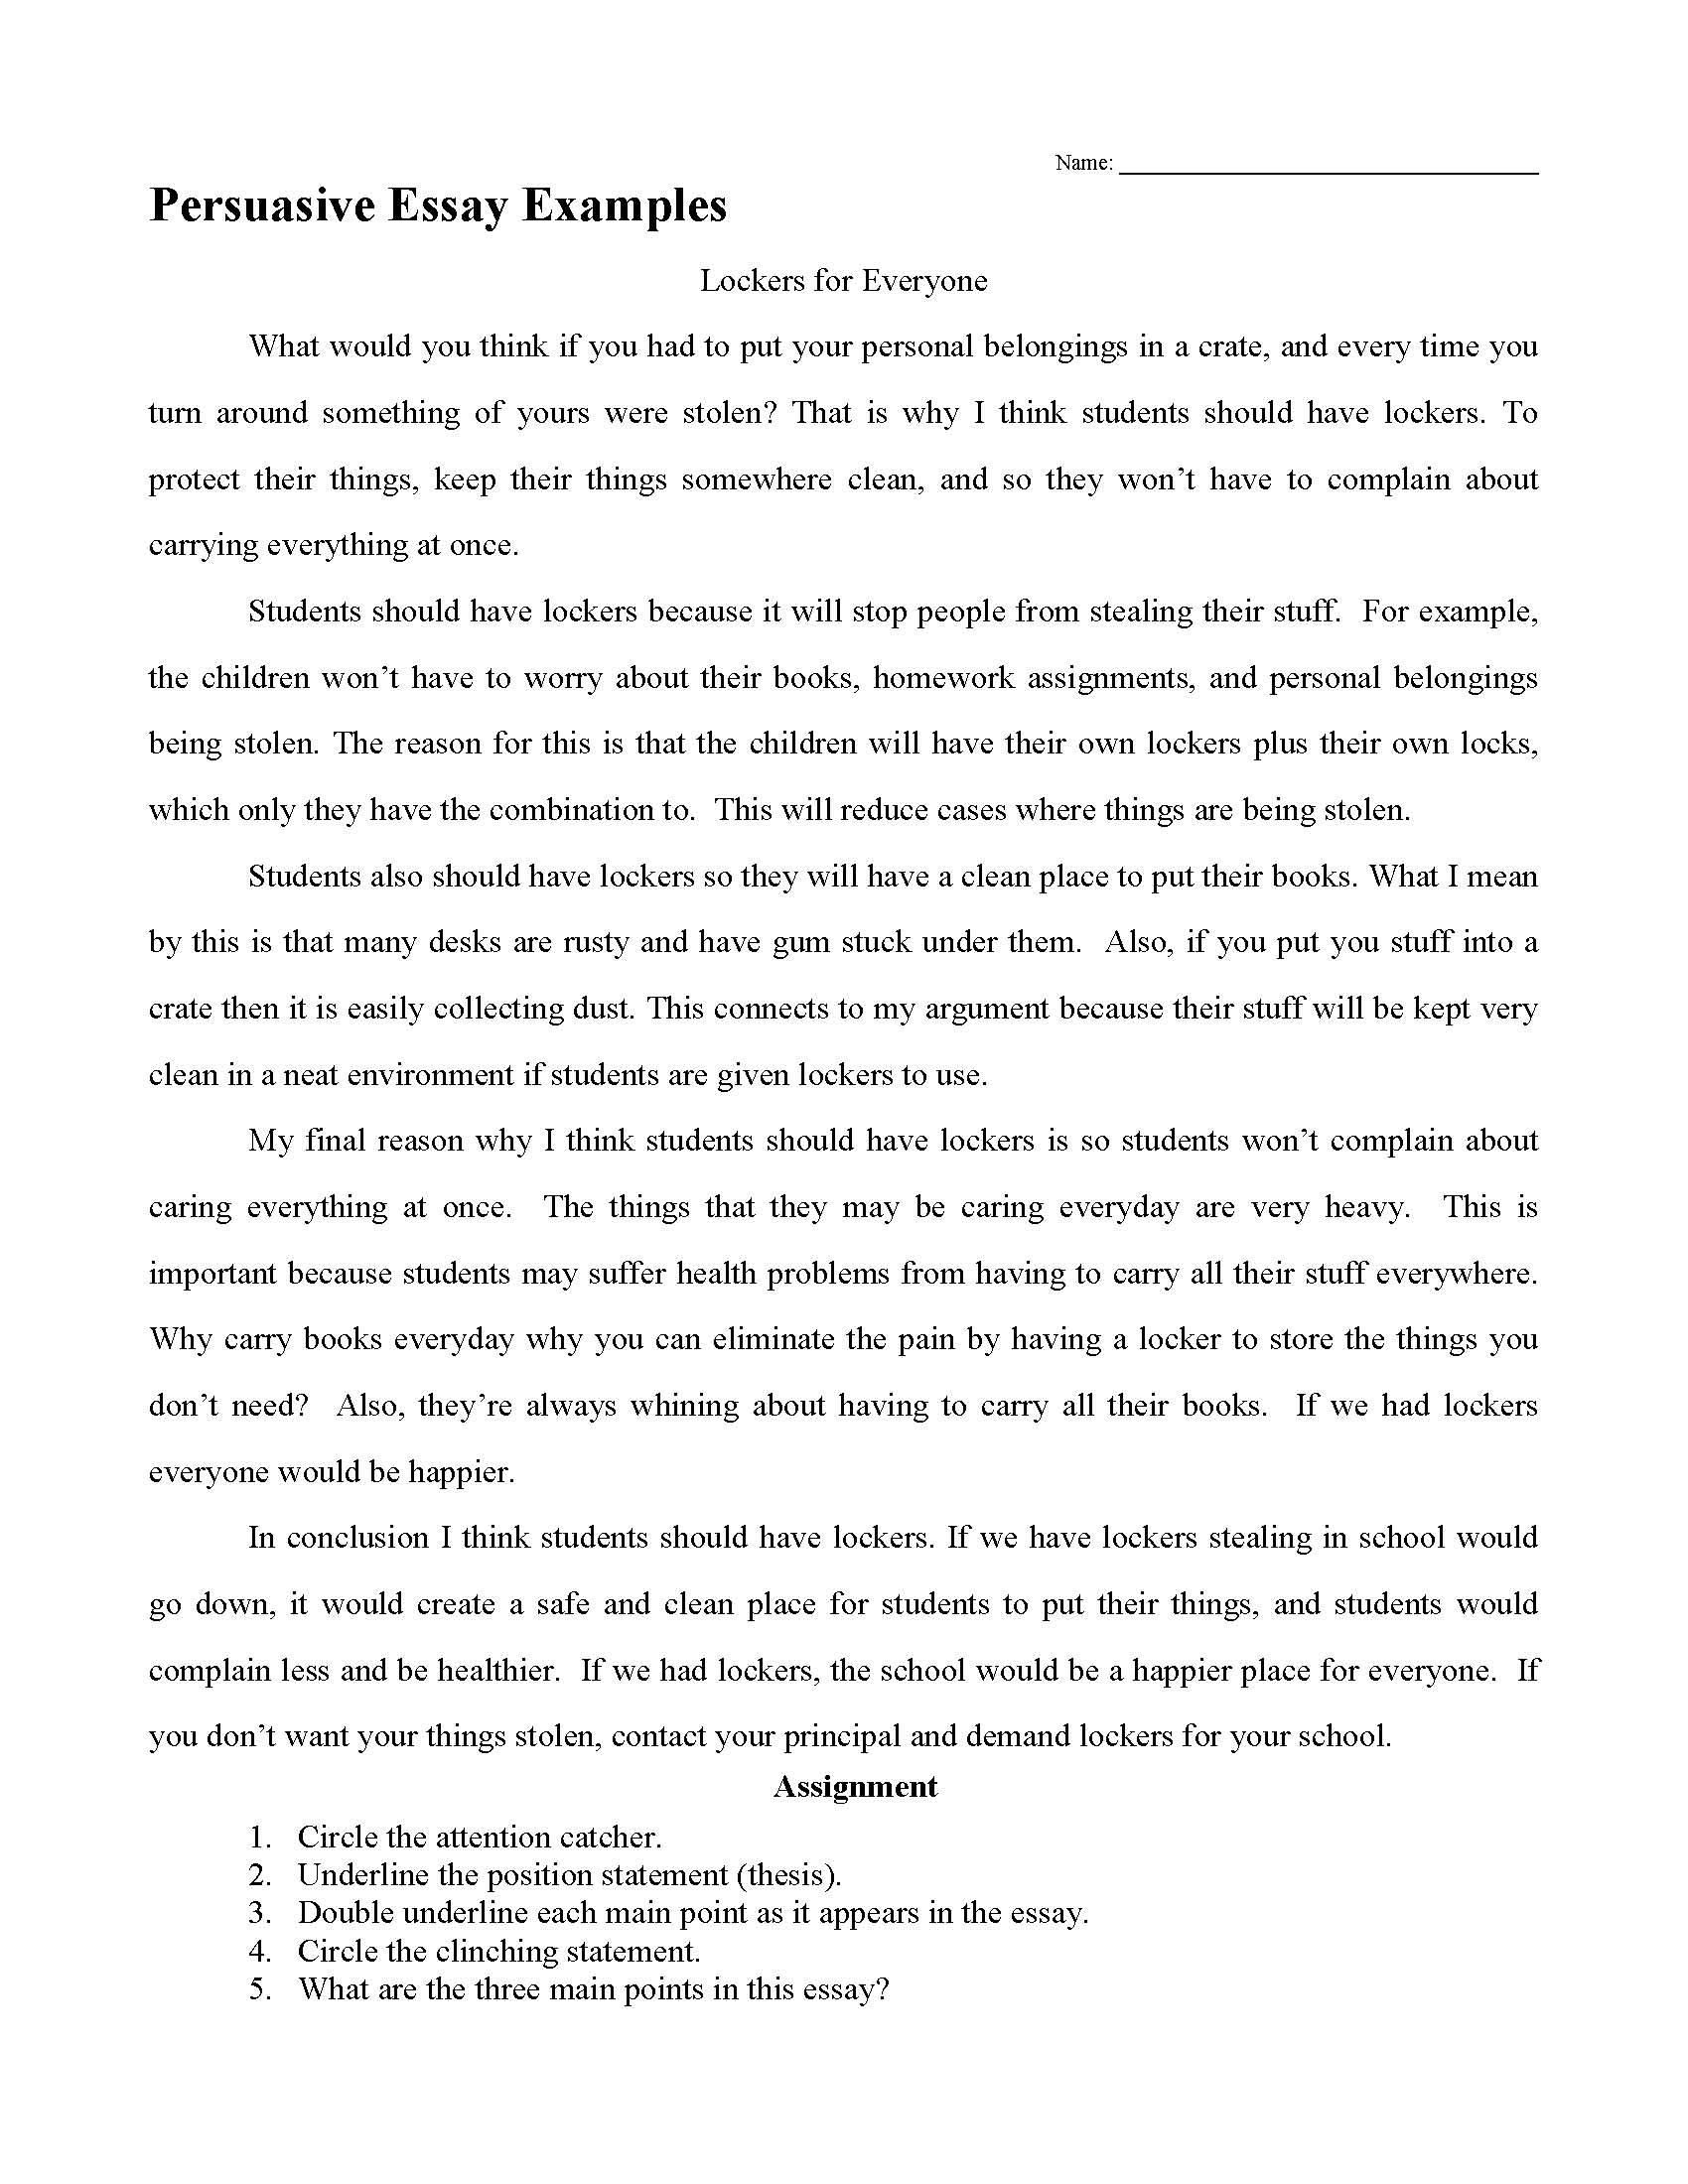 007 Research Paper Persuasive Essay Examples Acknowledgement Example For Beautiful Pdf Full